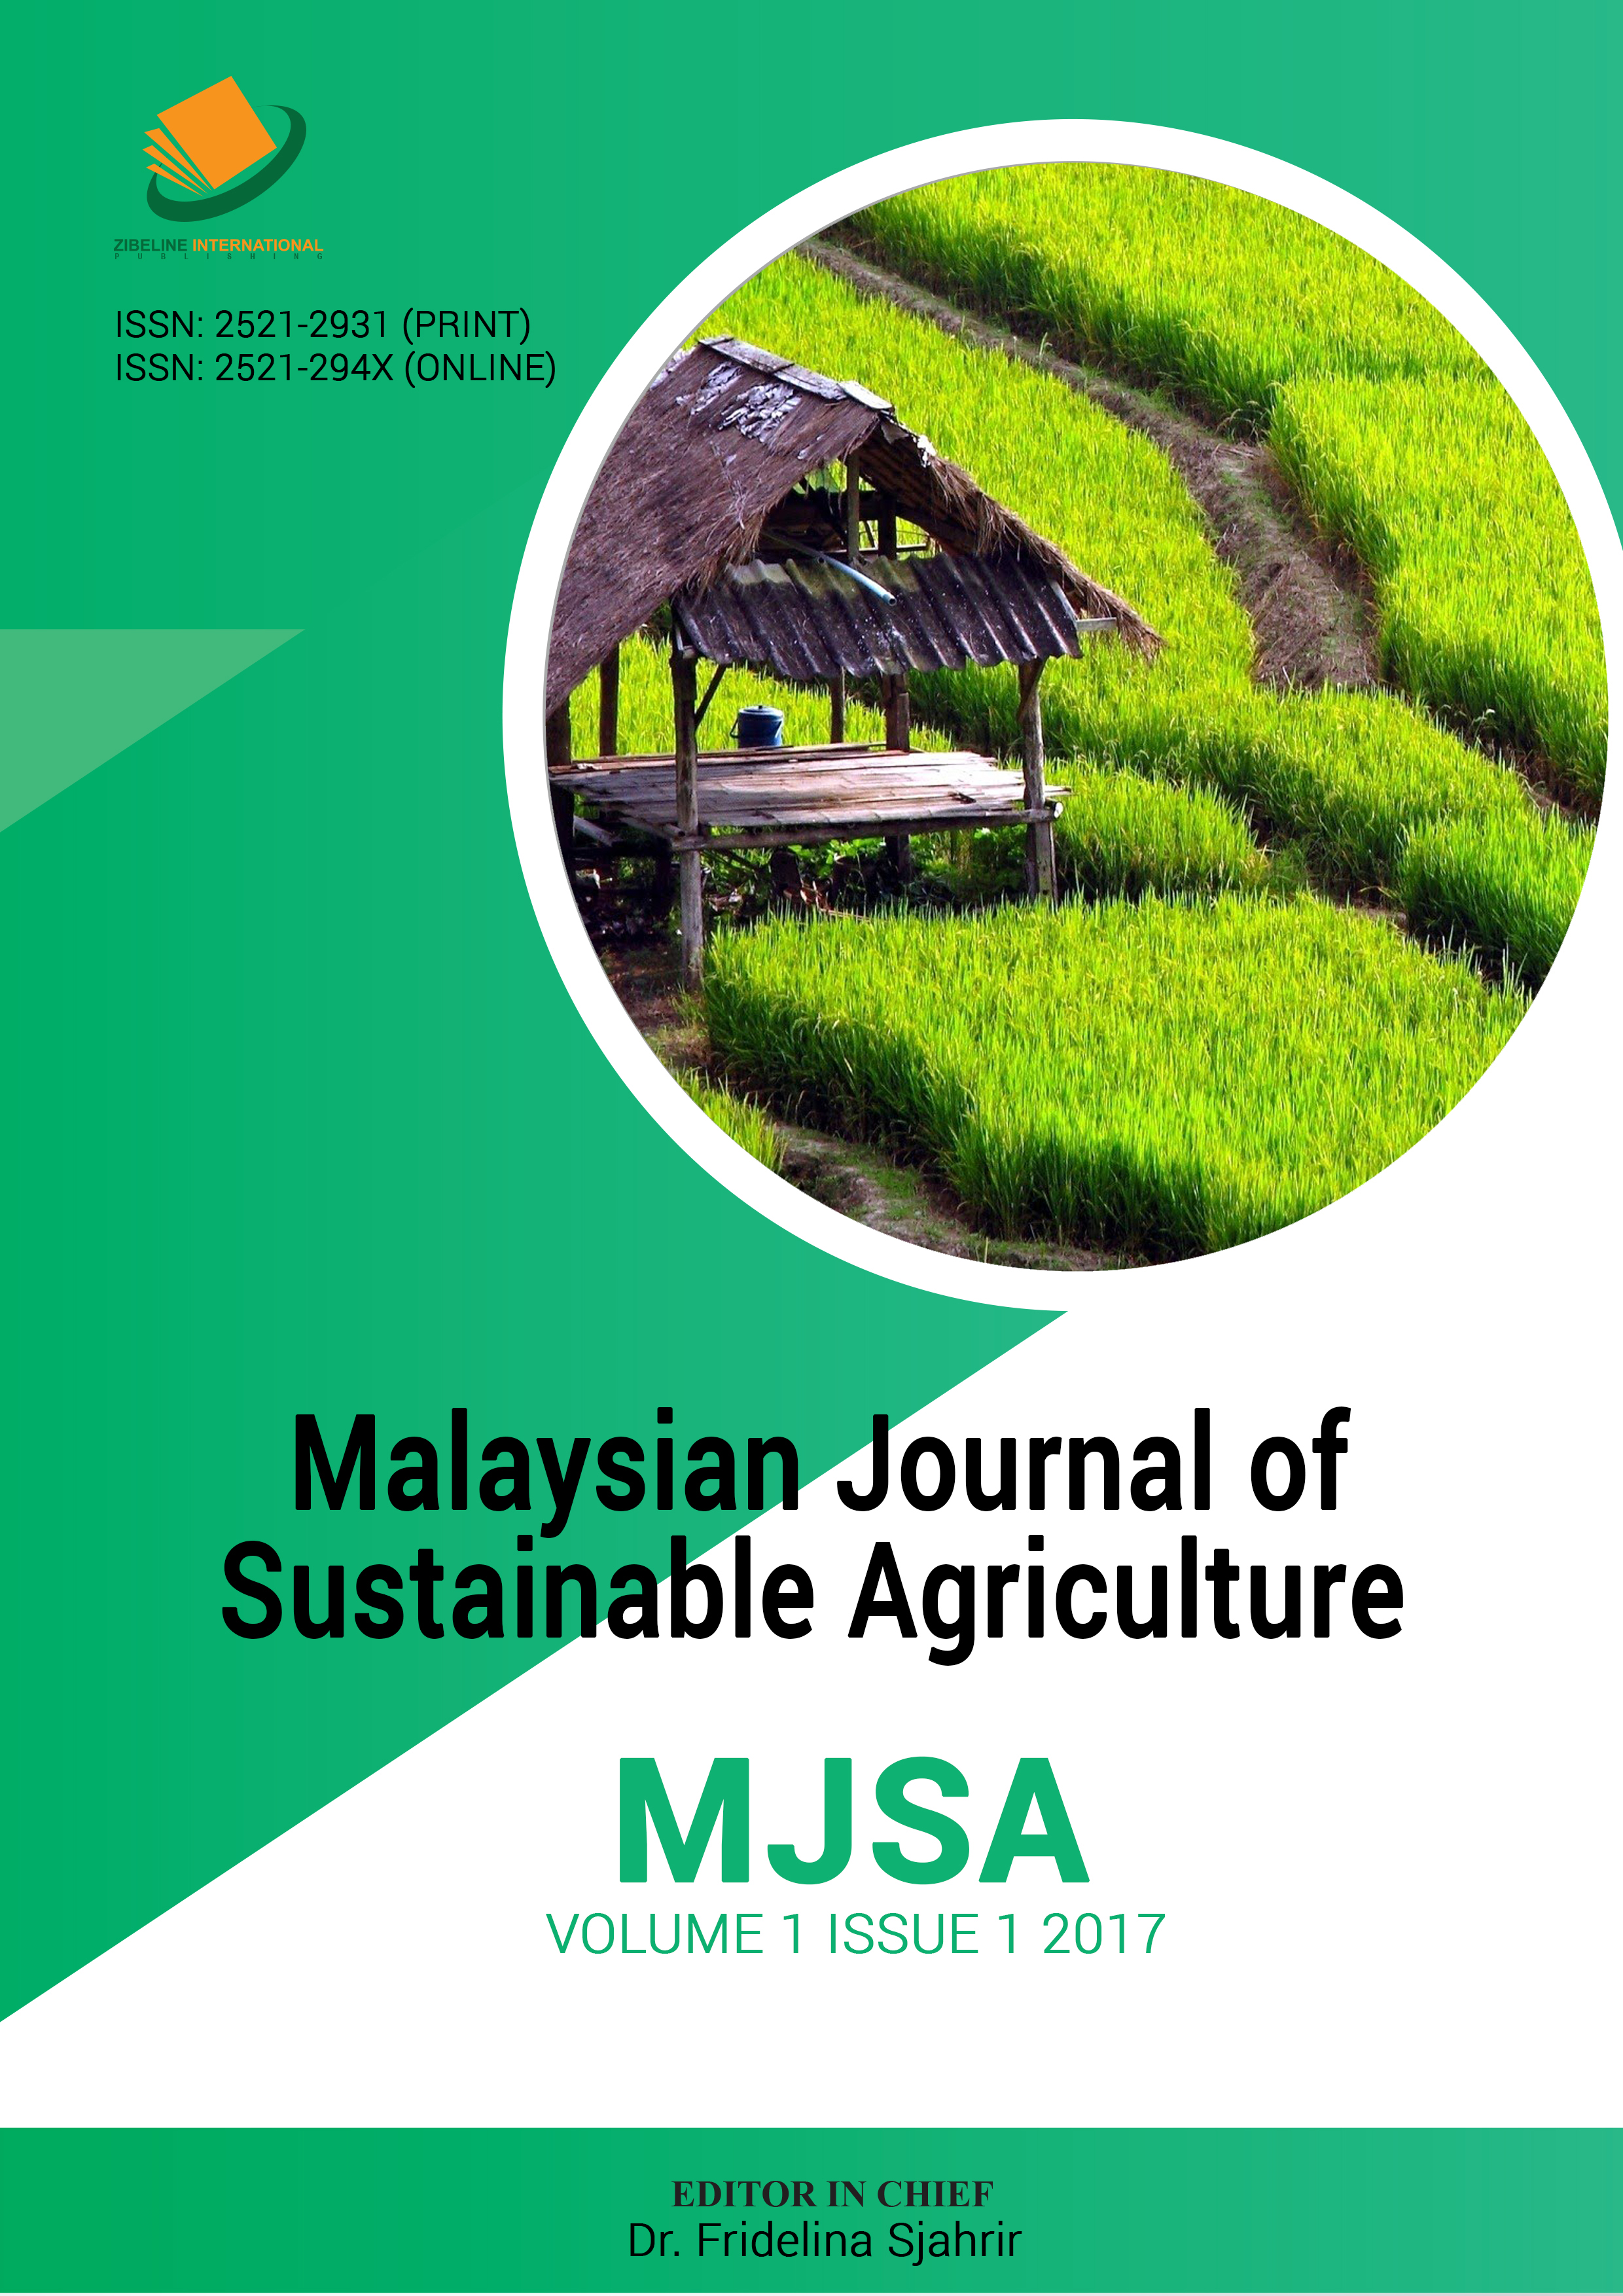 new-mjsa-cover